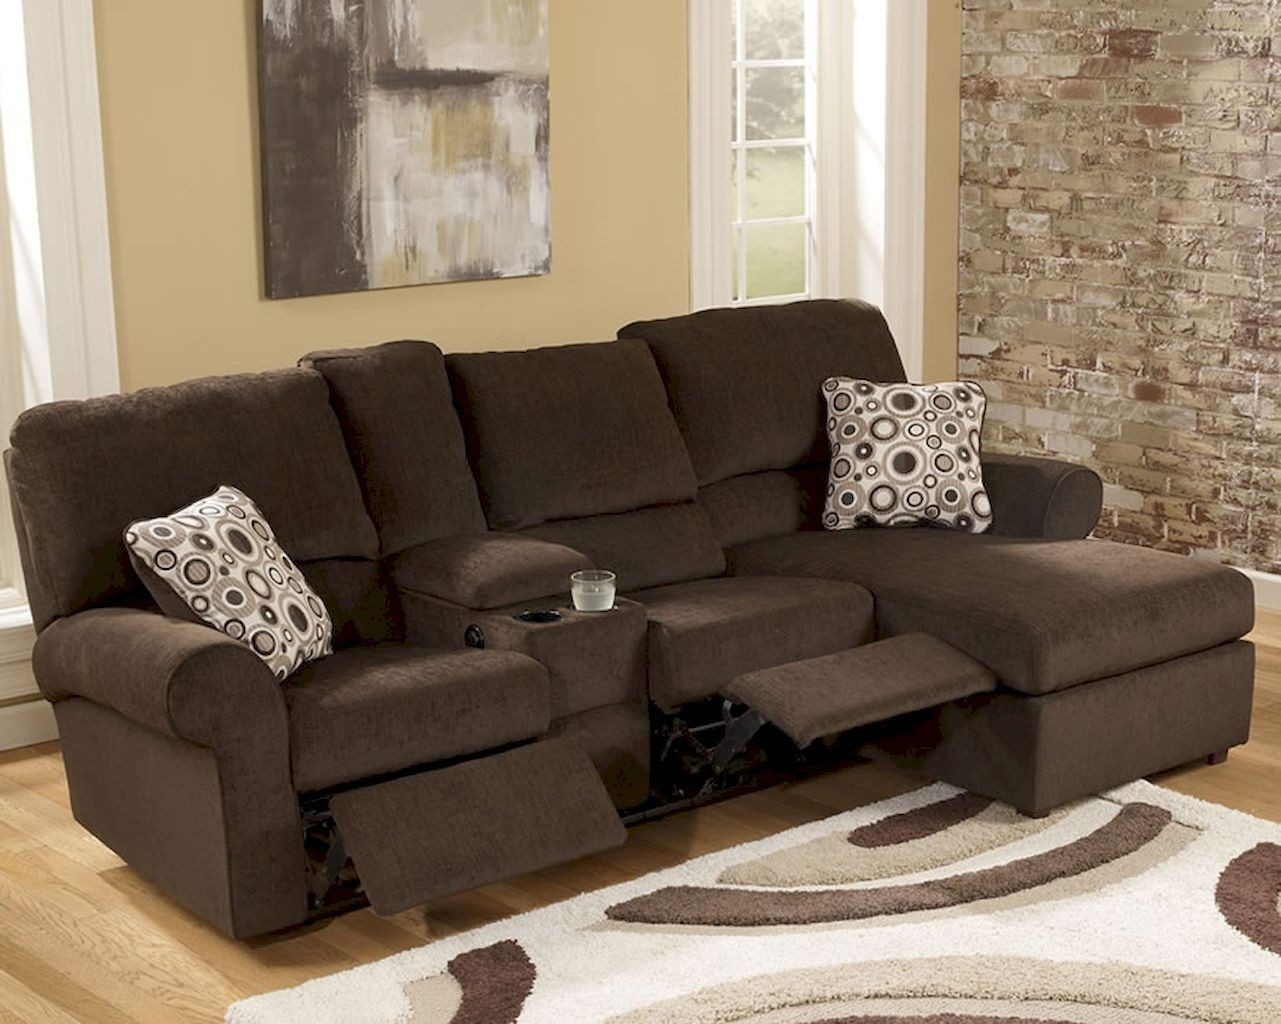 small sectional sofa with recliner ideas on foter rh foter com small l shaped sectional sofa with recliner small leather sectional sofa with recliner